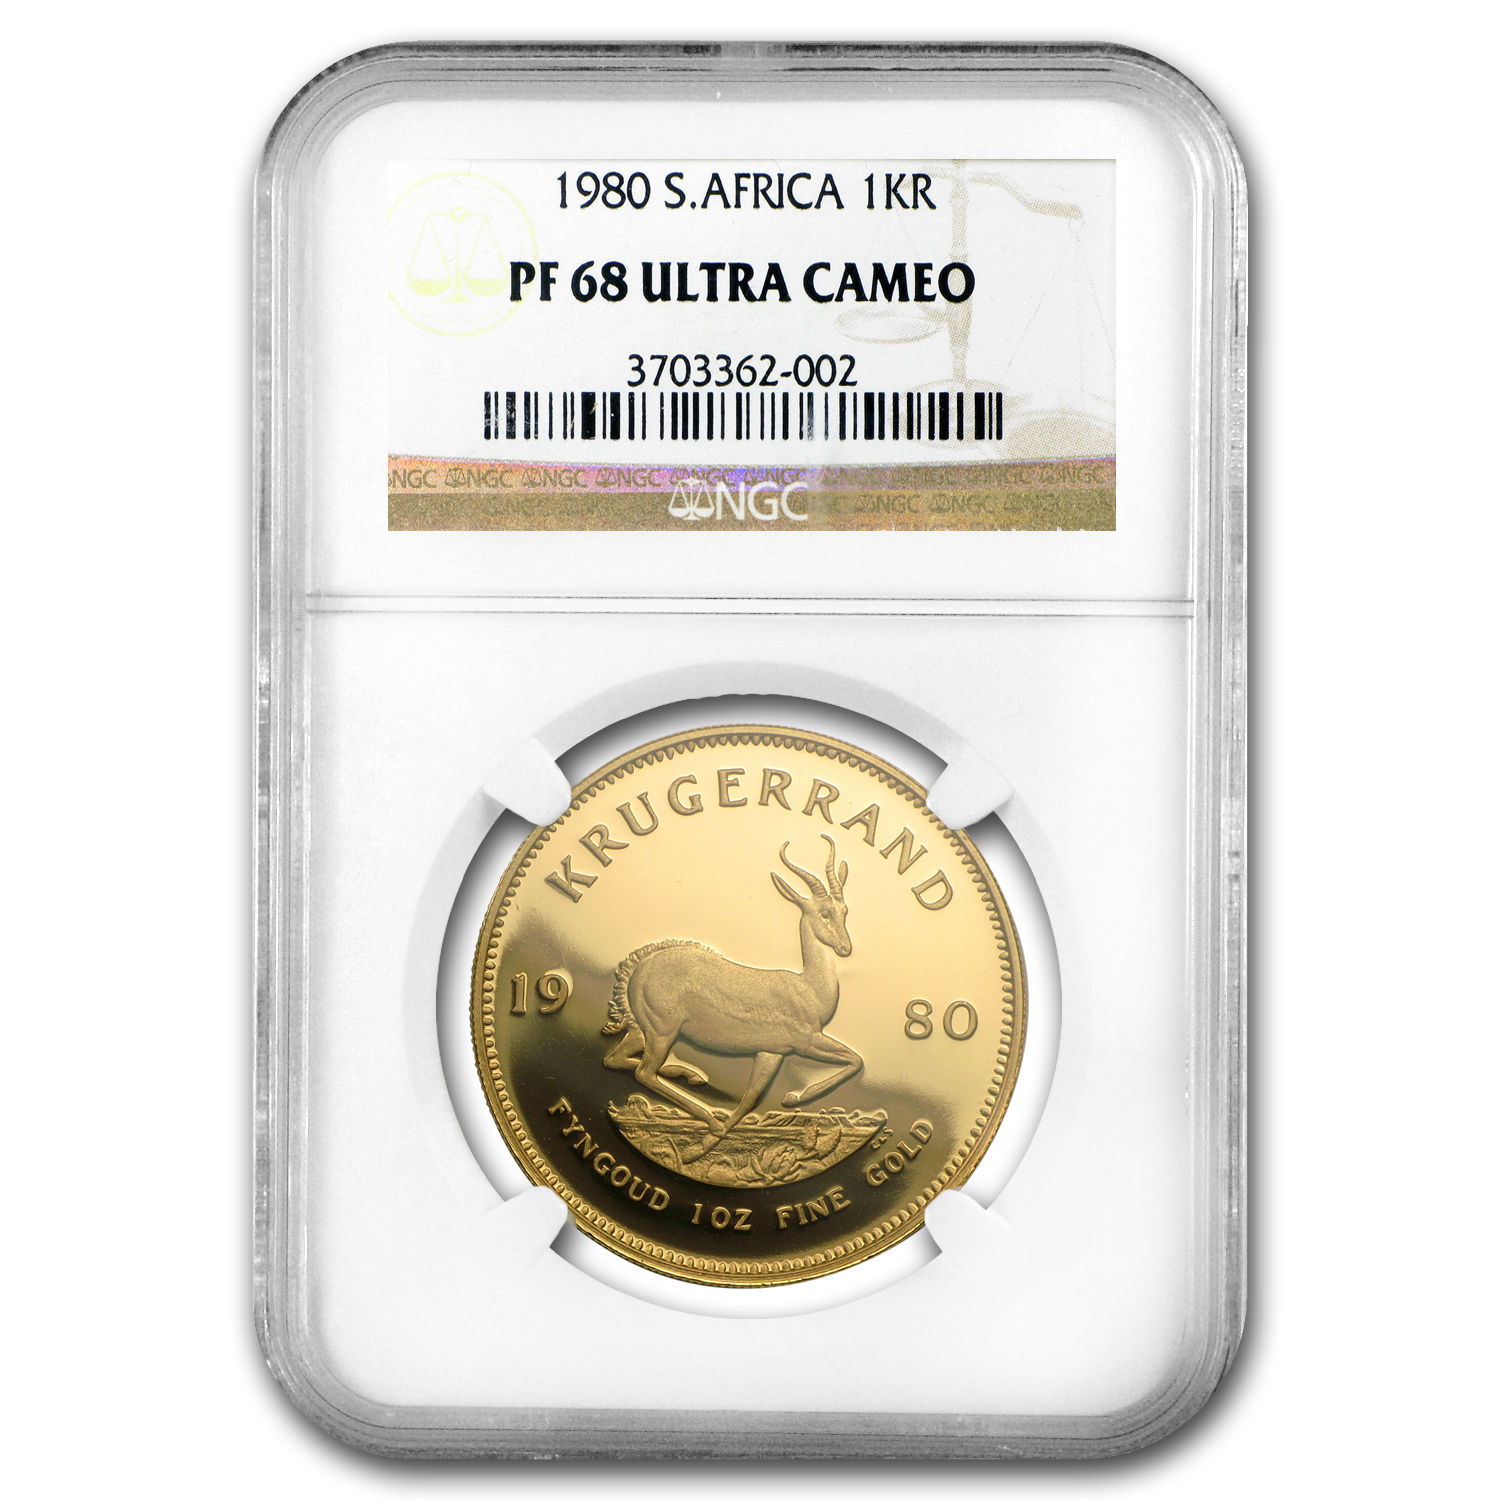 1980 South Africa 1 oz Gold Krugerrand PF-68 NGC